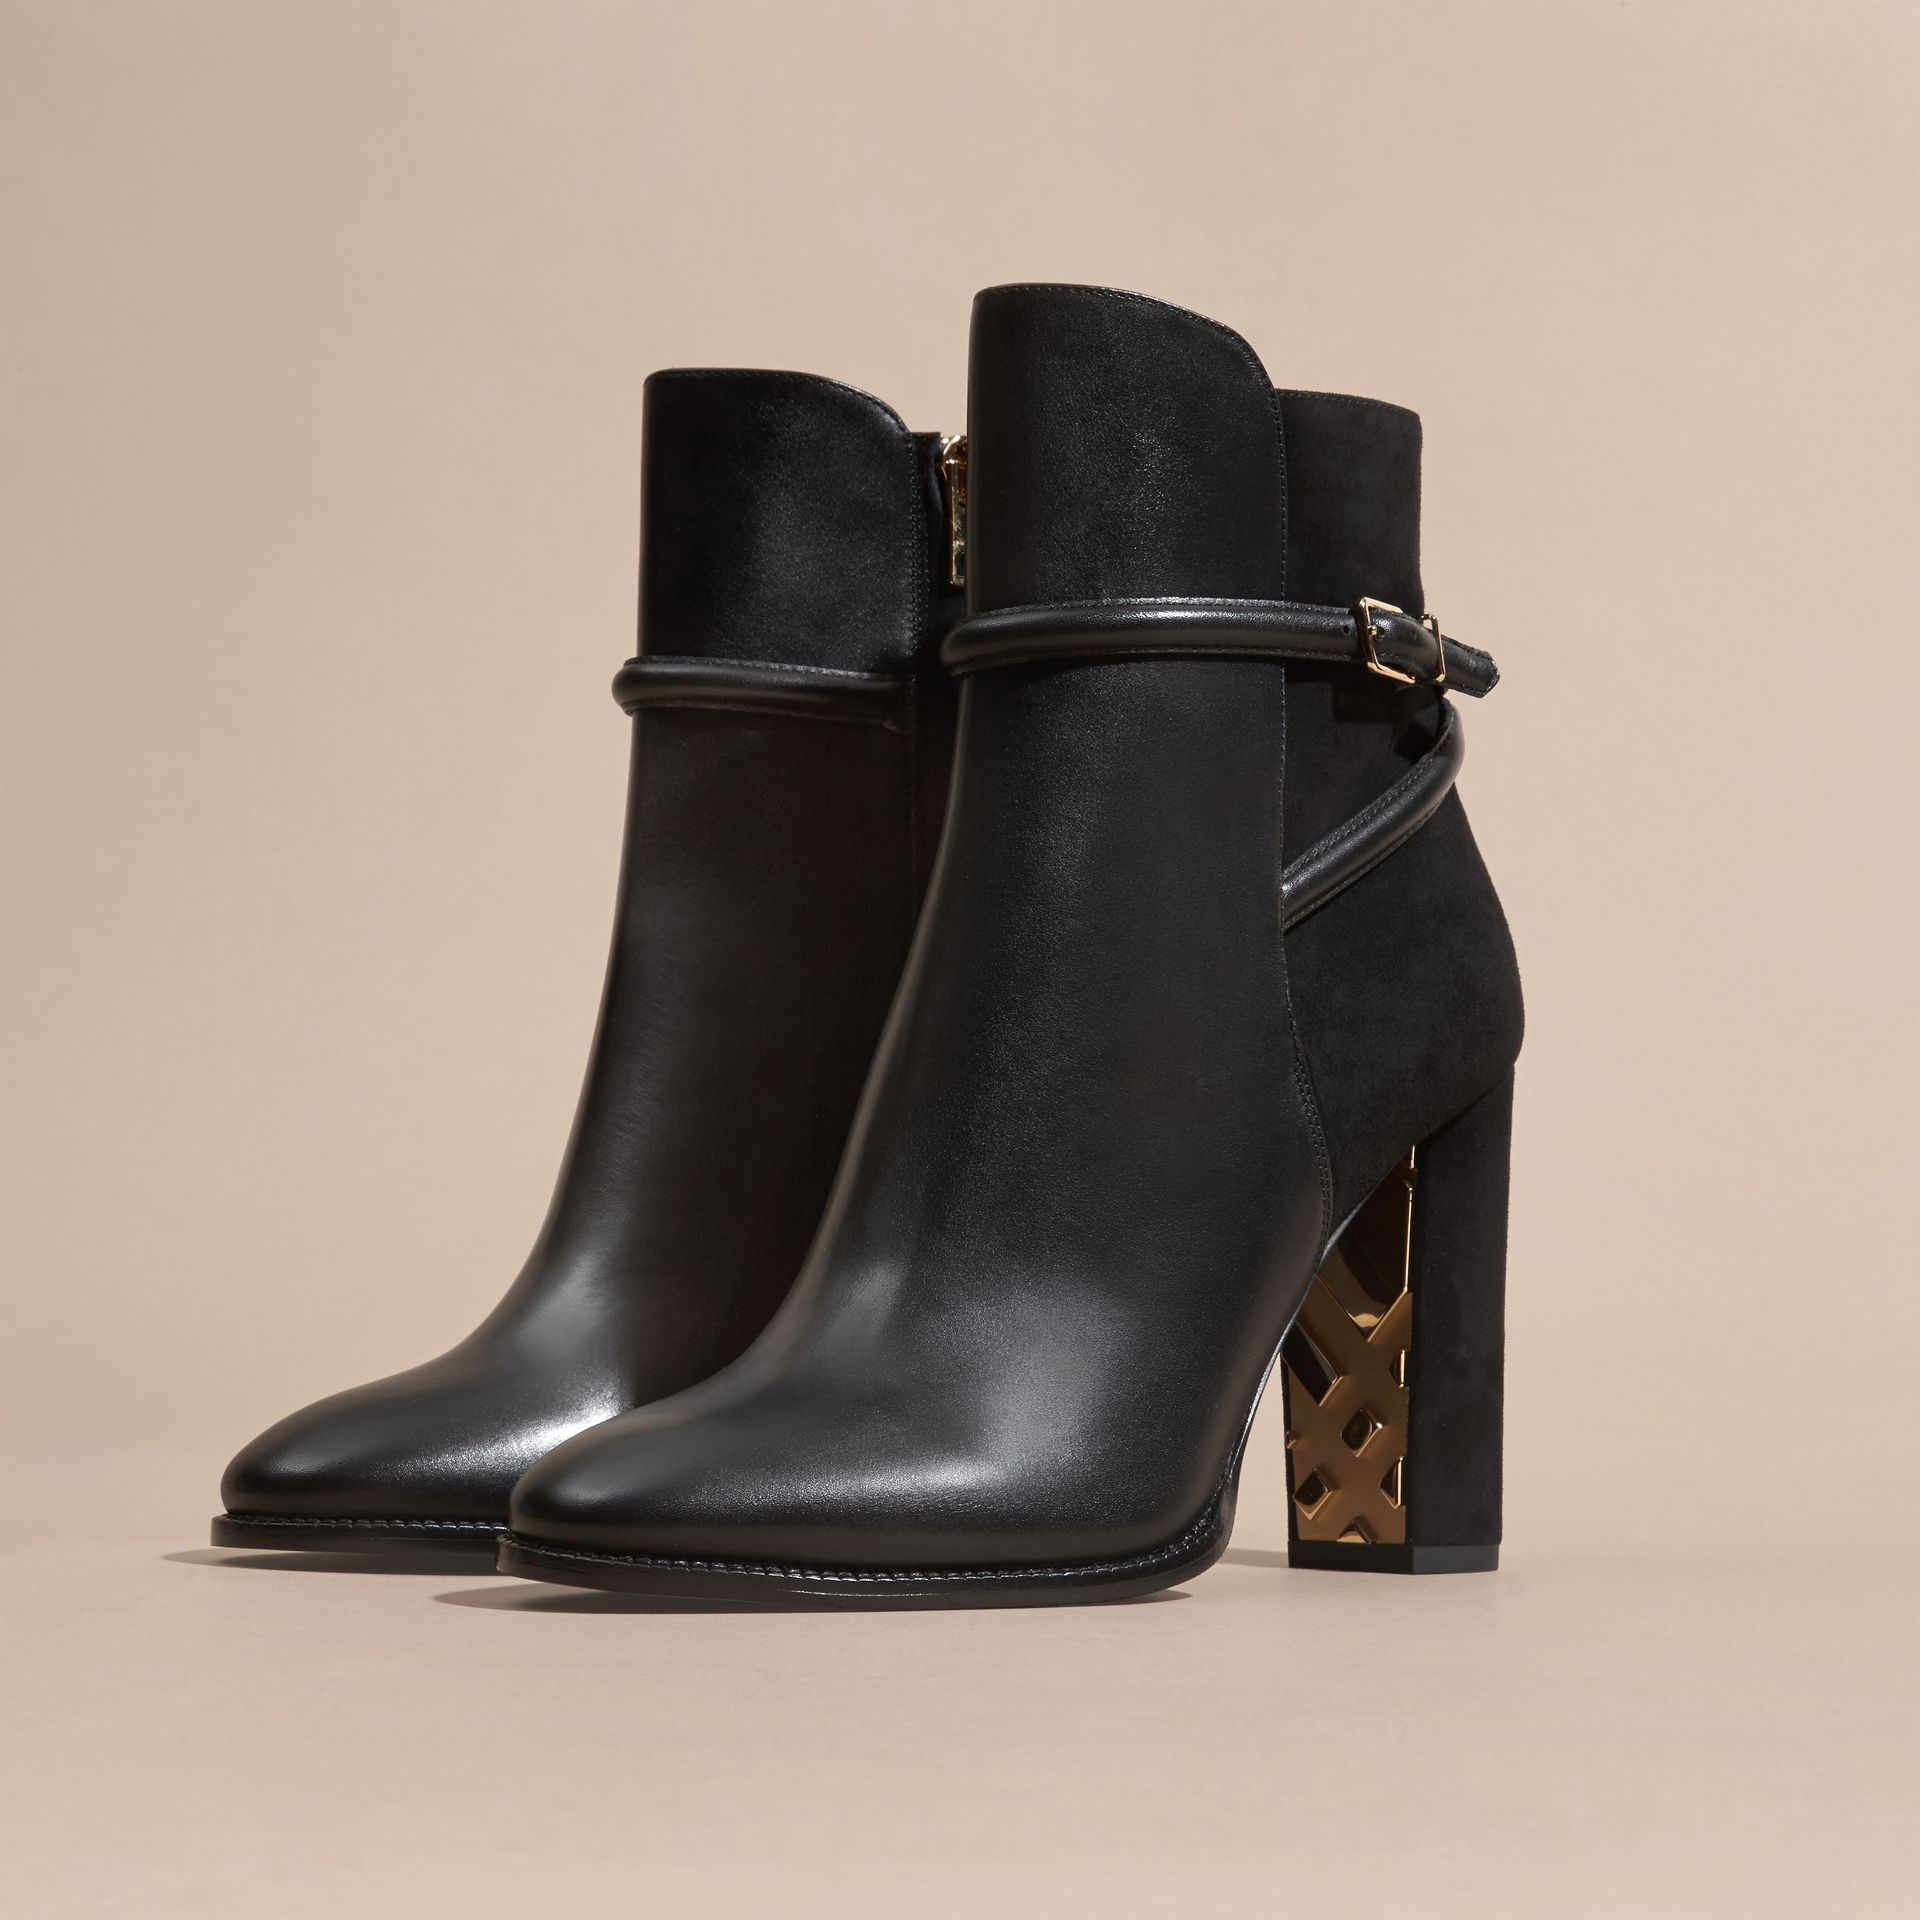 Black Strap Detail Leather and Suede Ankle Boots Black - gallery image 3